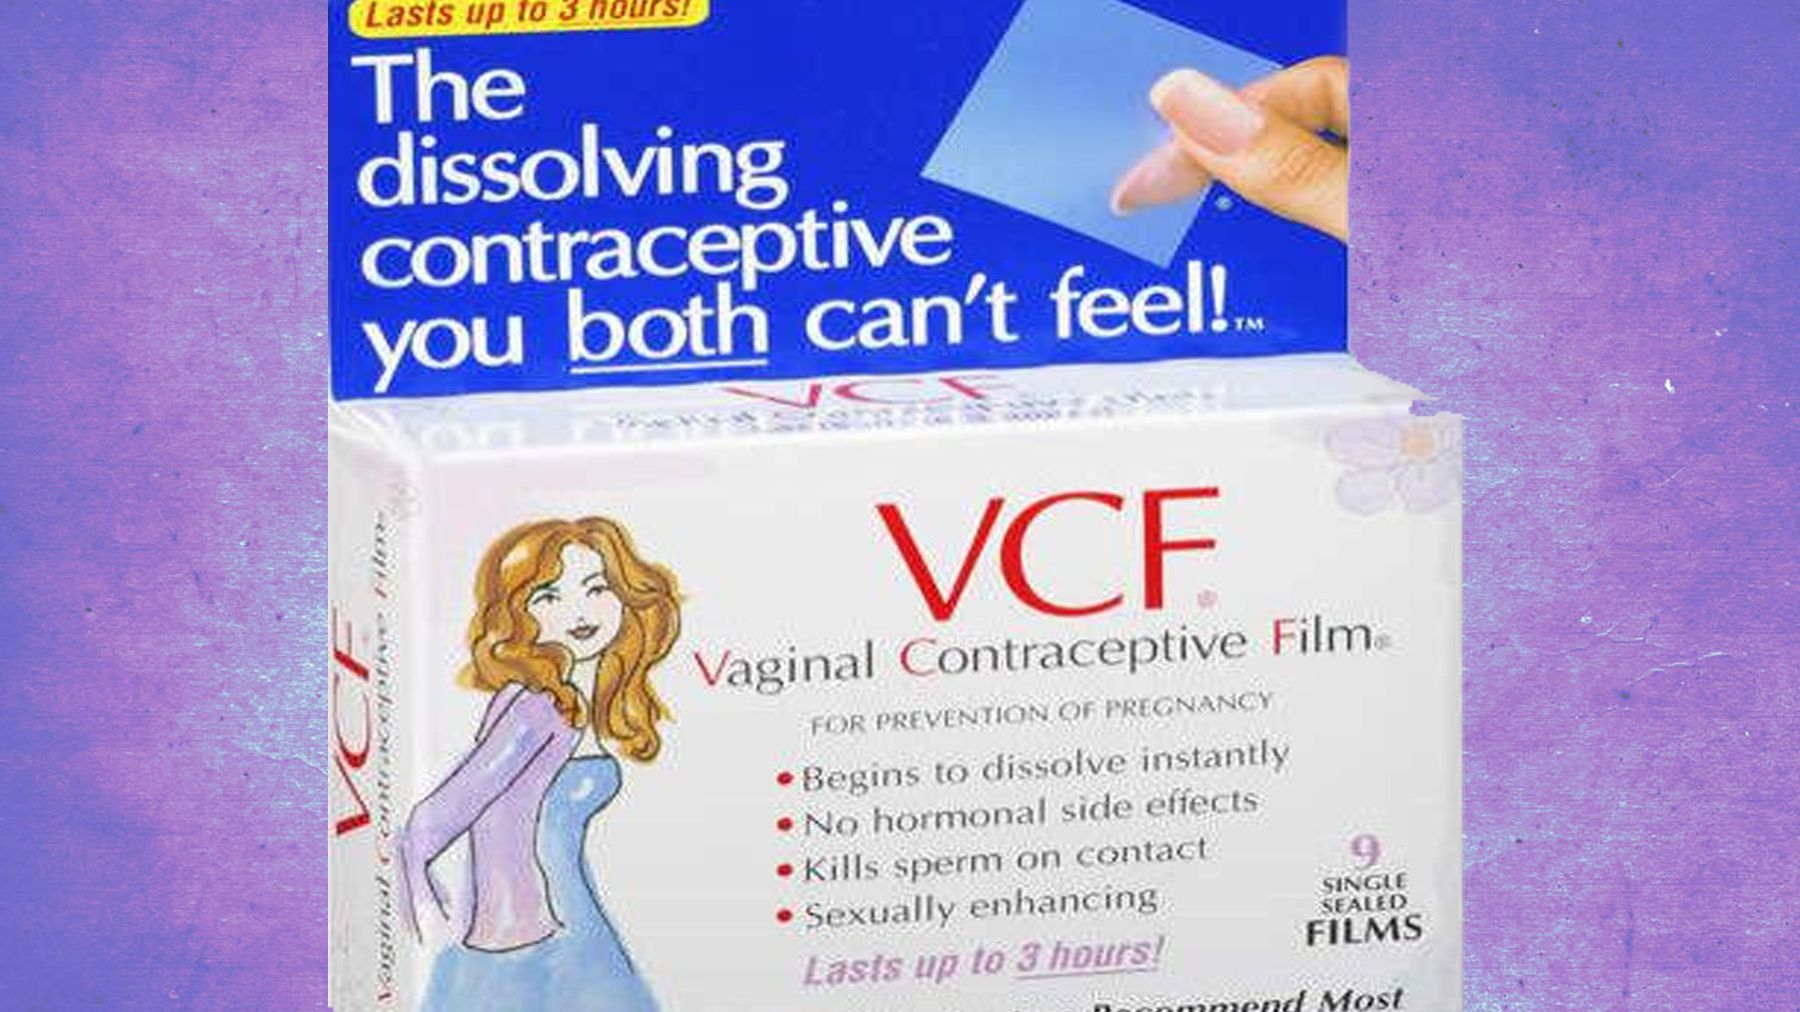 What Is Vaginal Contraceptive Film (VCF)?